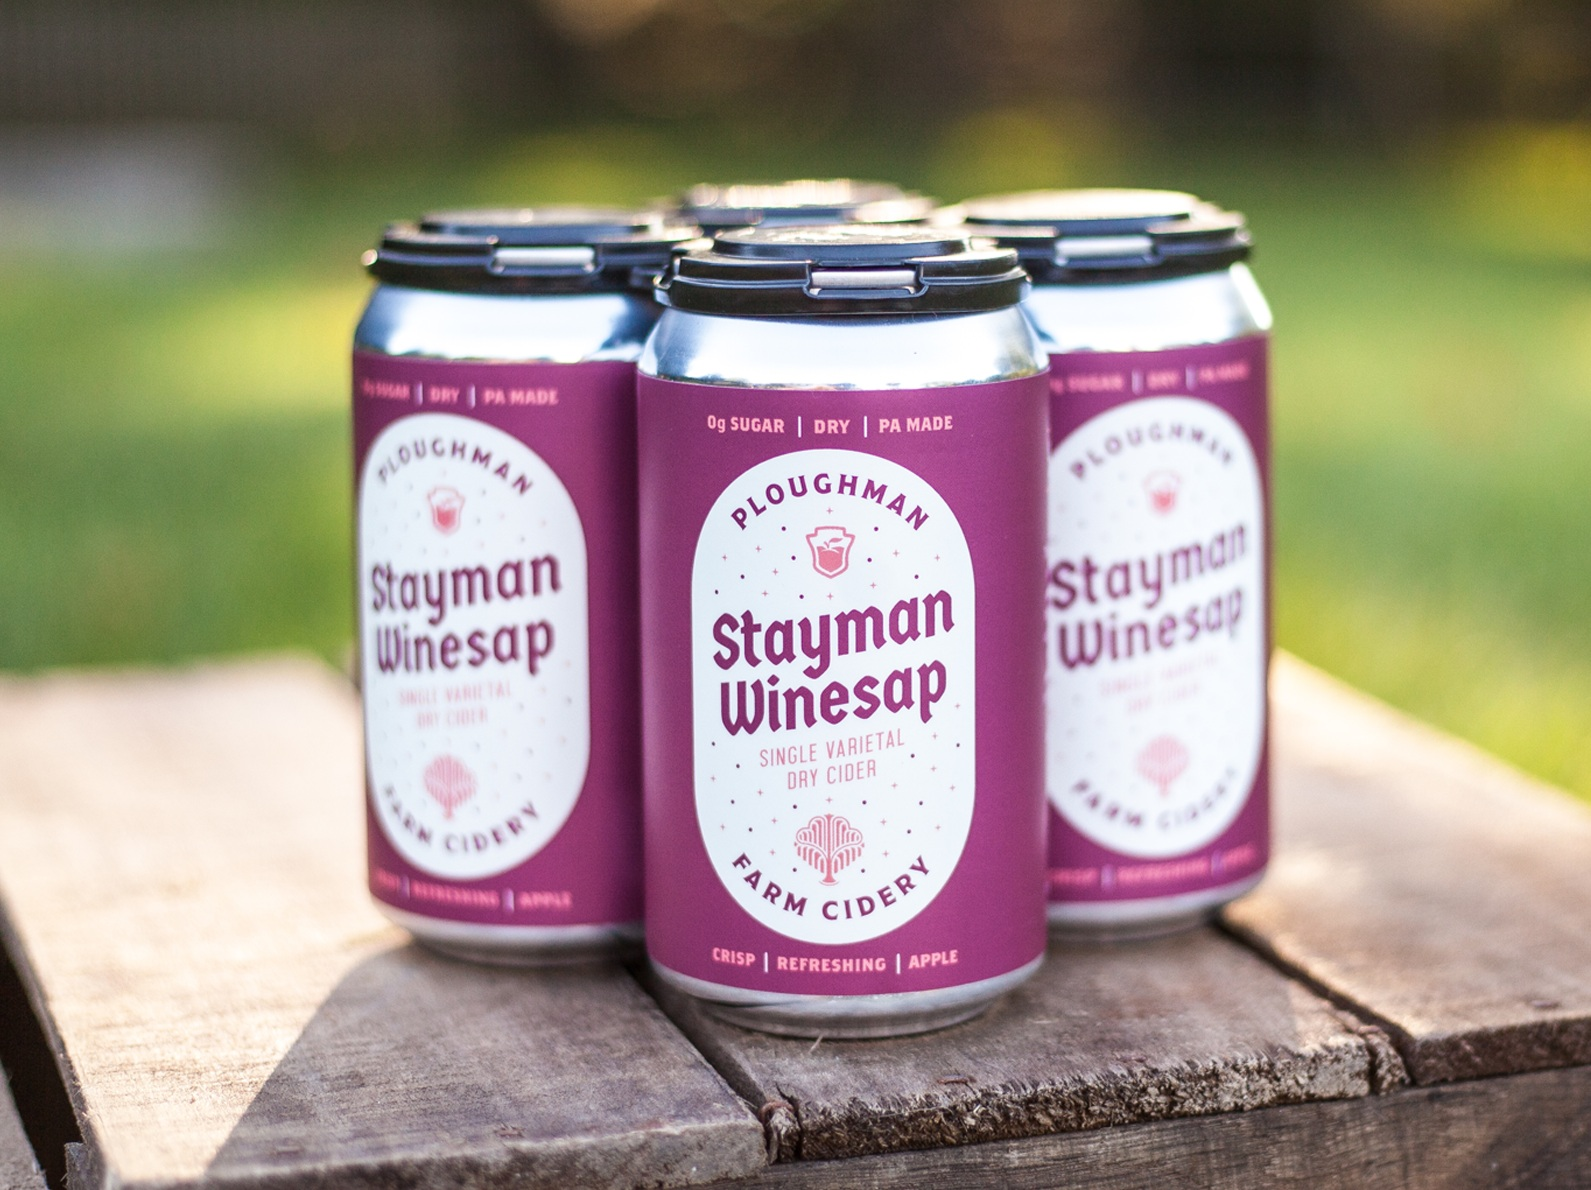 ploughman-homepage-cans-stayman.png